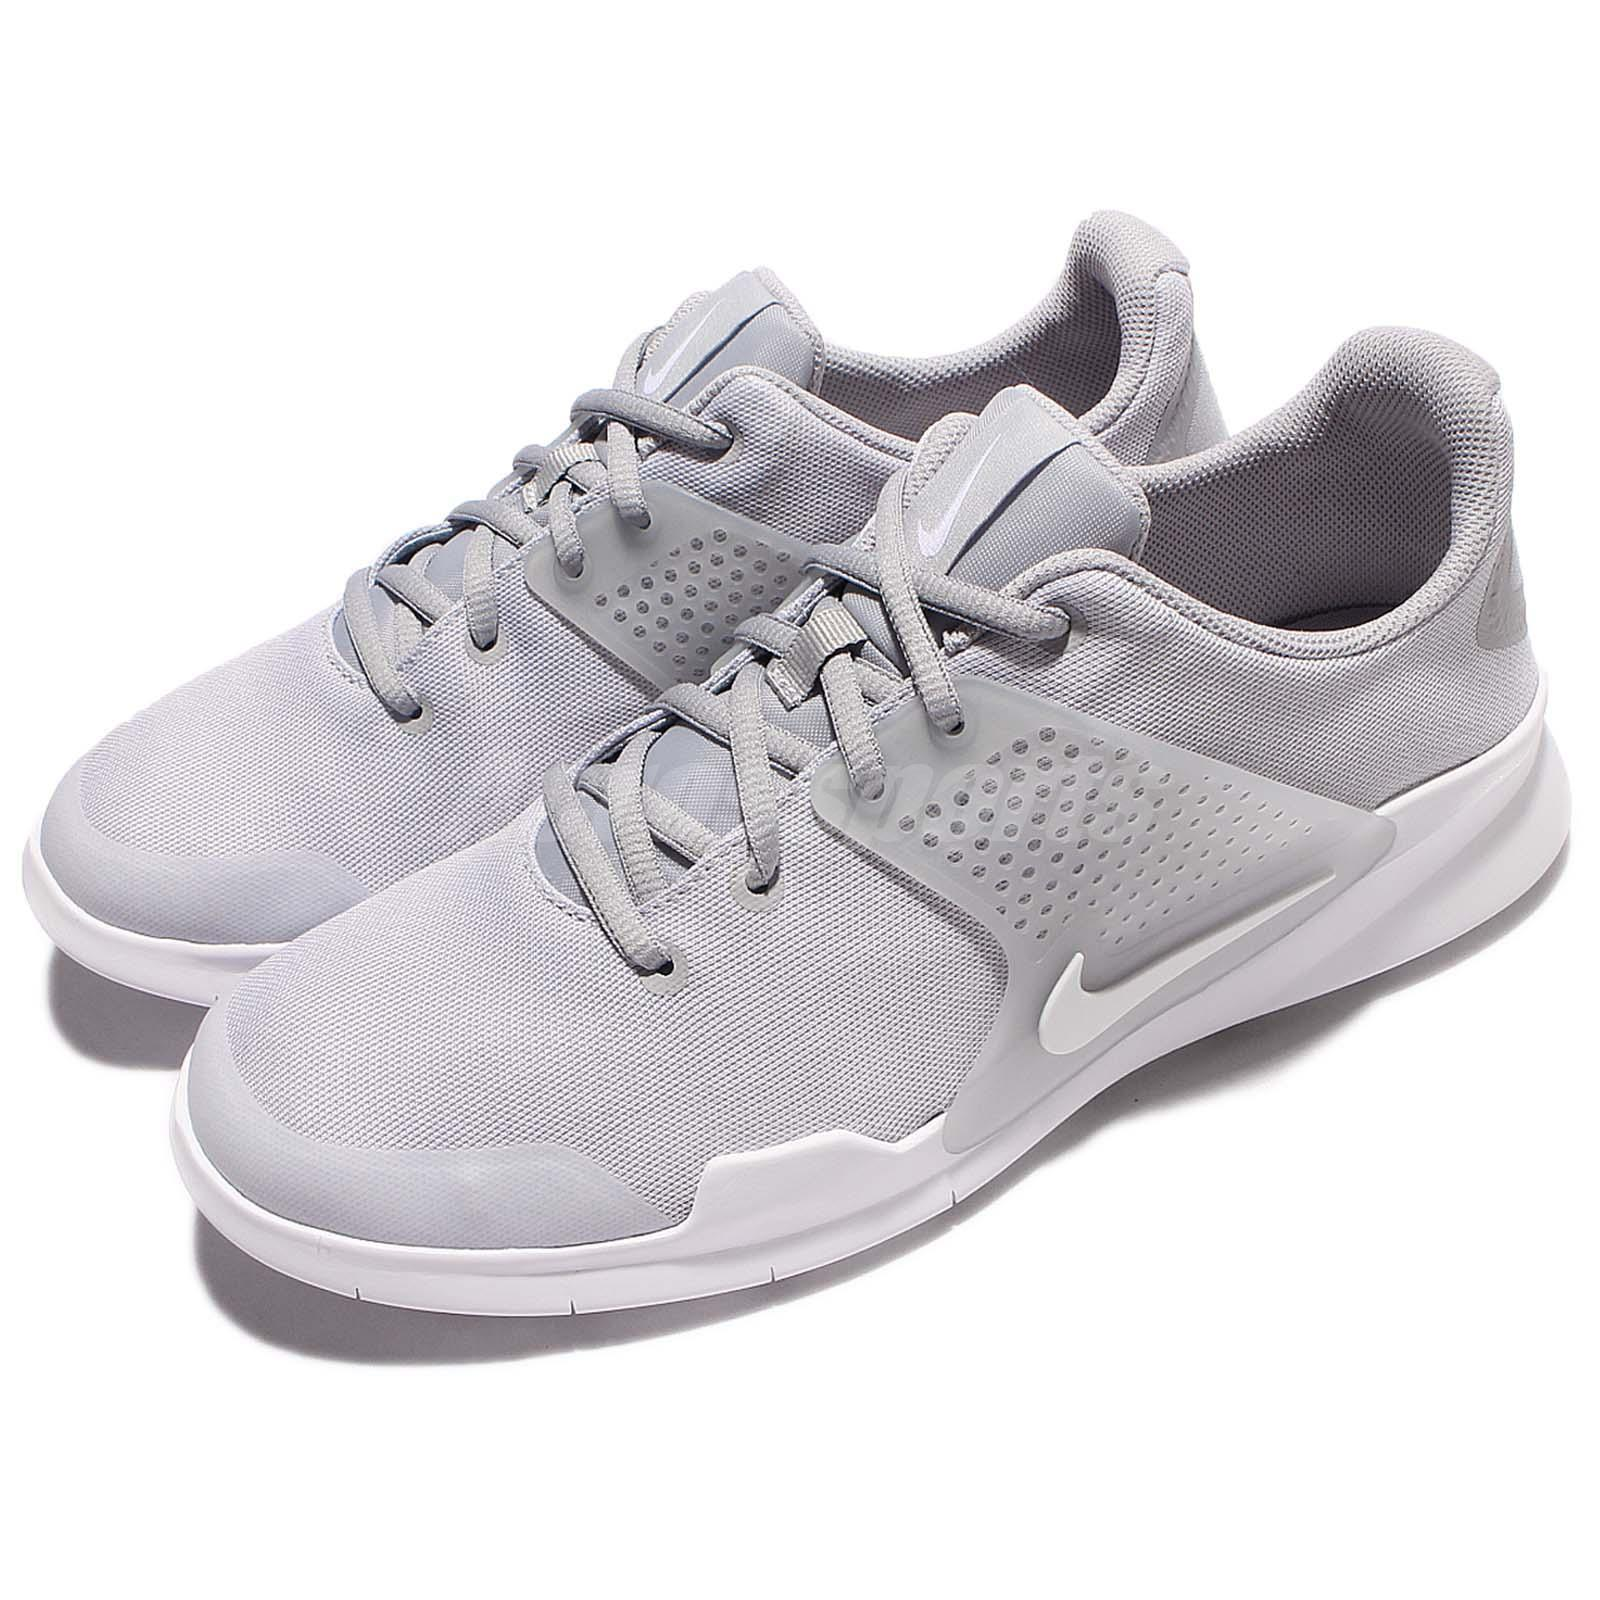 [902813-001] MEN'S NIKE ARROWZ RUNNING TRAINING SNEAKERS WOLF GREY WHITE 8-12